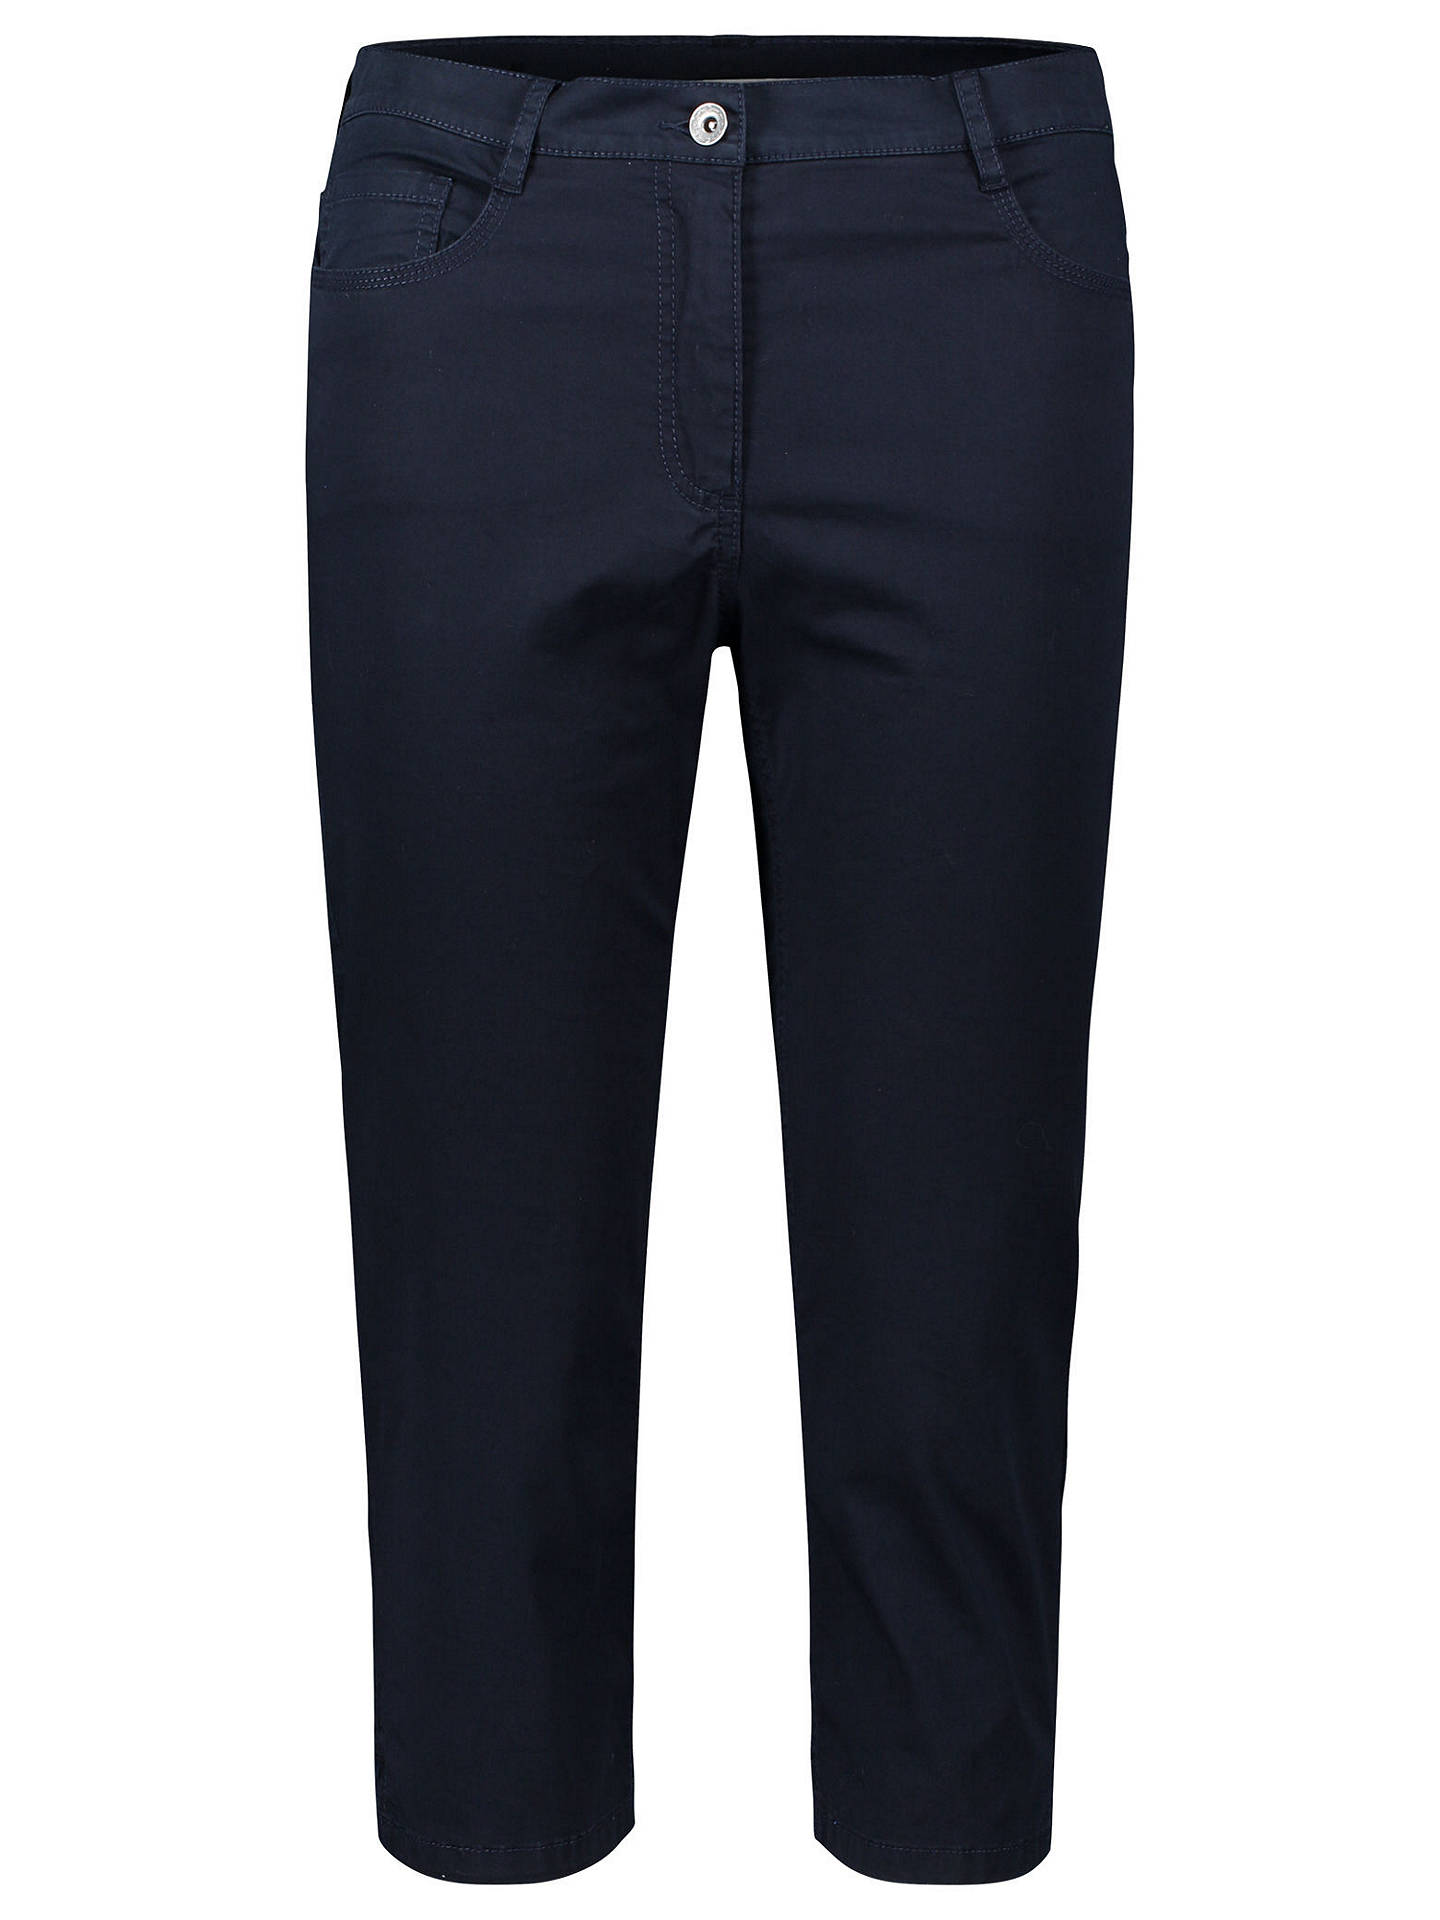 Buy Betty Barclay Cropped Slimline Jeans, Dark Sky, 8 Online at johnlewis.com